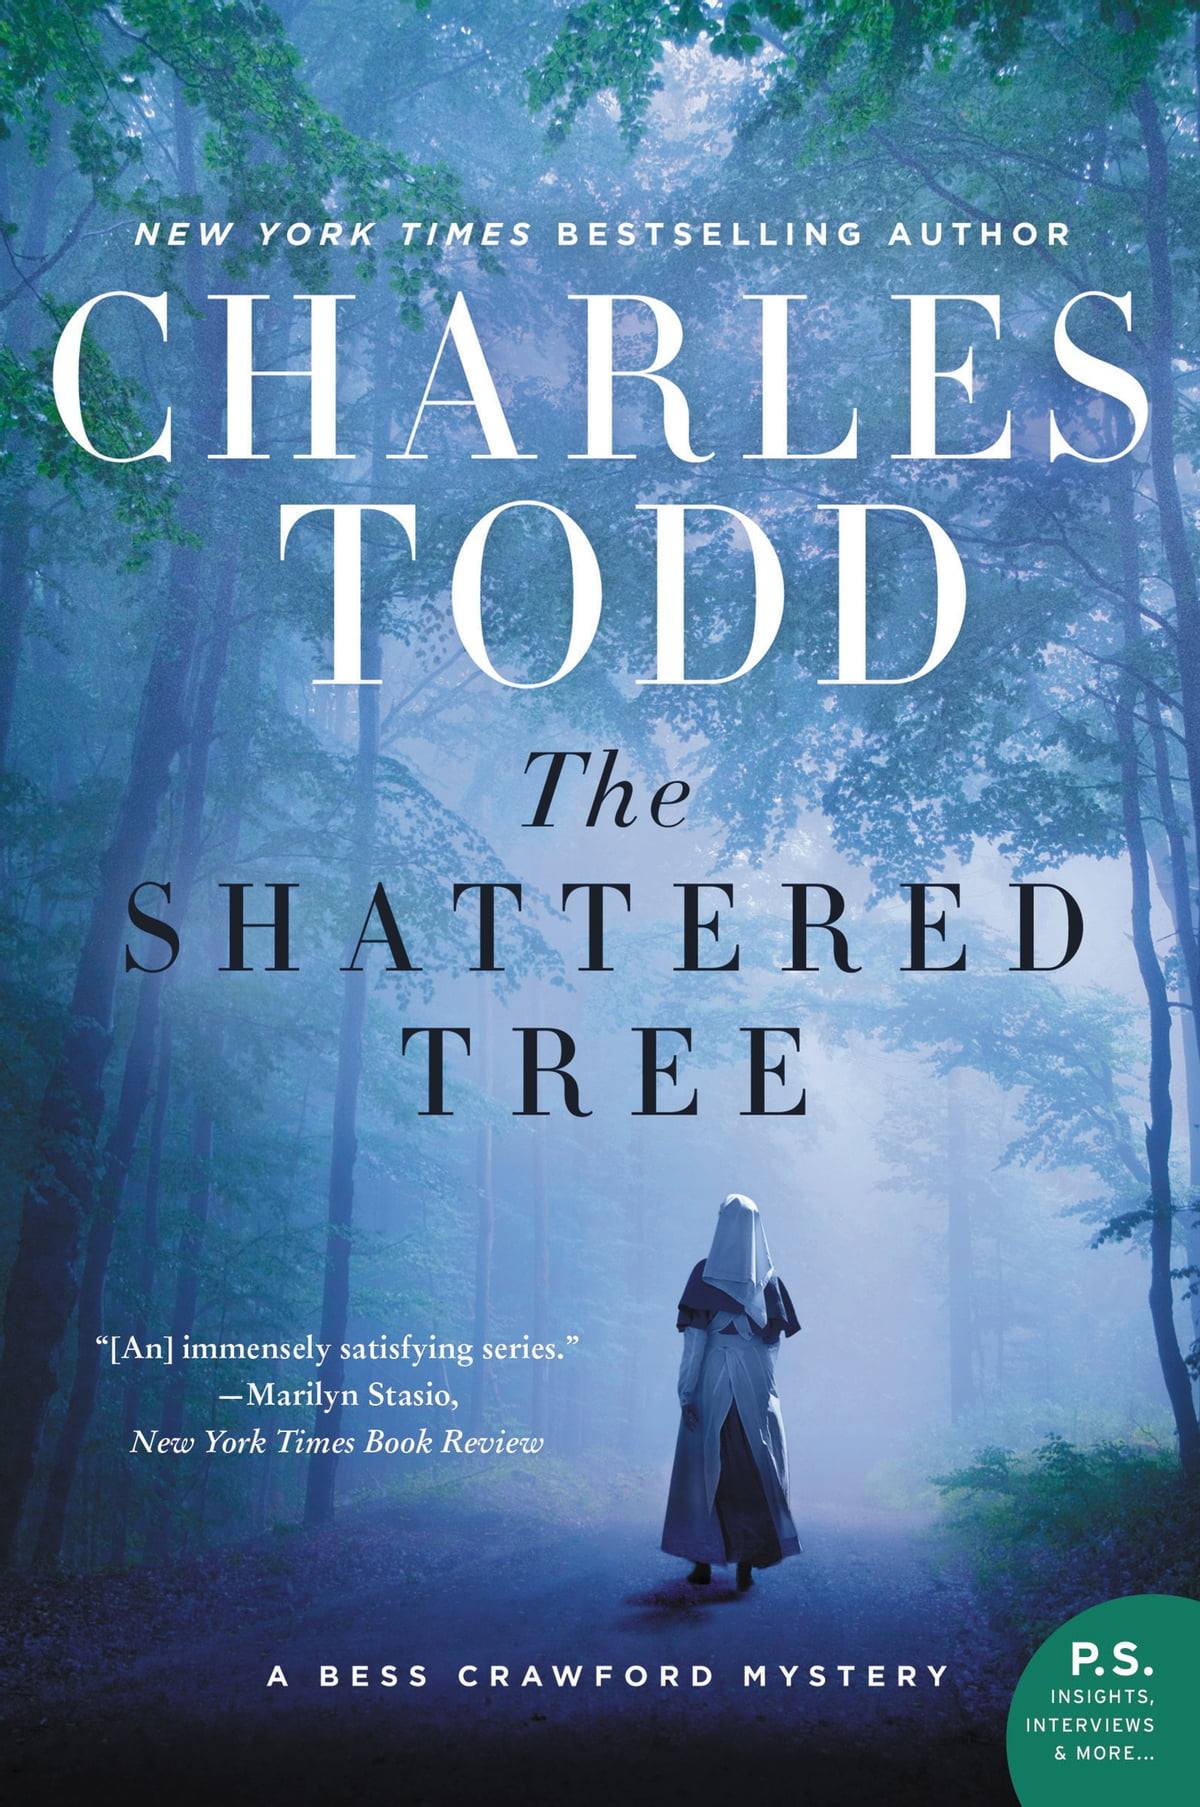 The Shattered Tree  A Bess Crawford Mystery Ebook By Charles Todd